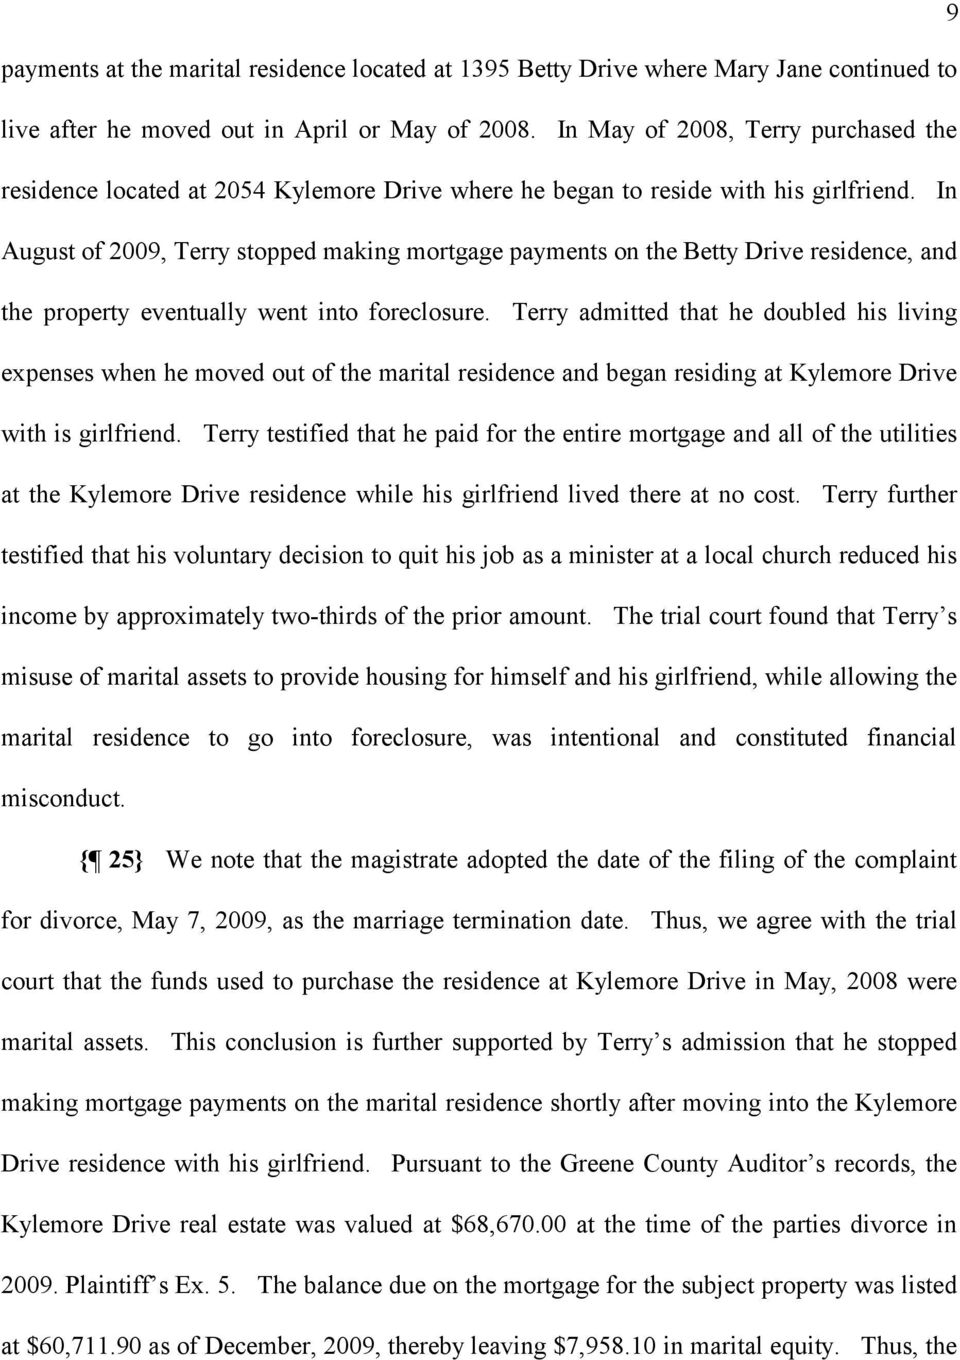 In August of 2009, Terry stopped making mortgage payments on the Betty Drive residence, and the property eventually went into foreclosure.